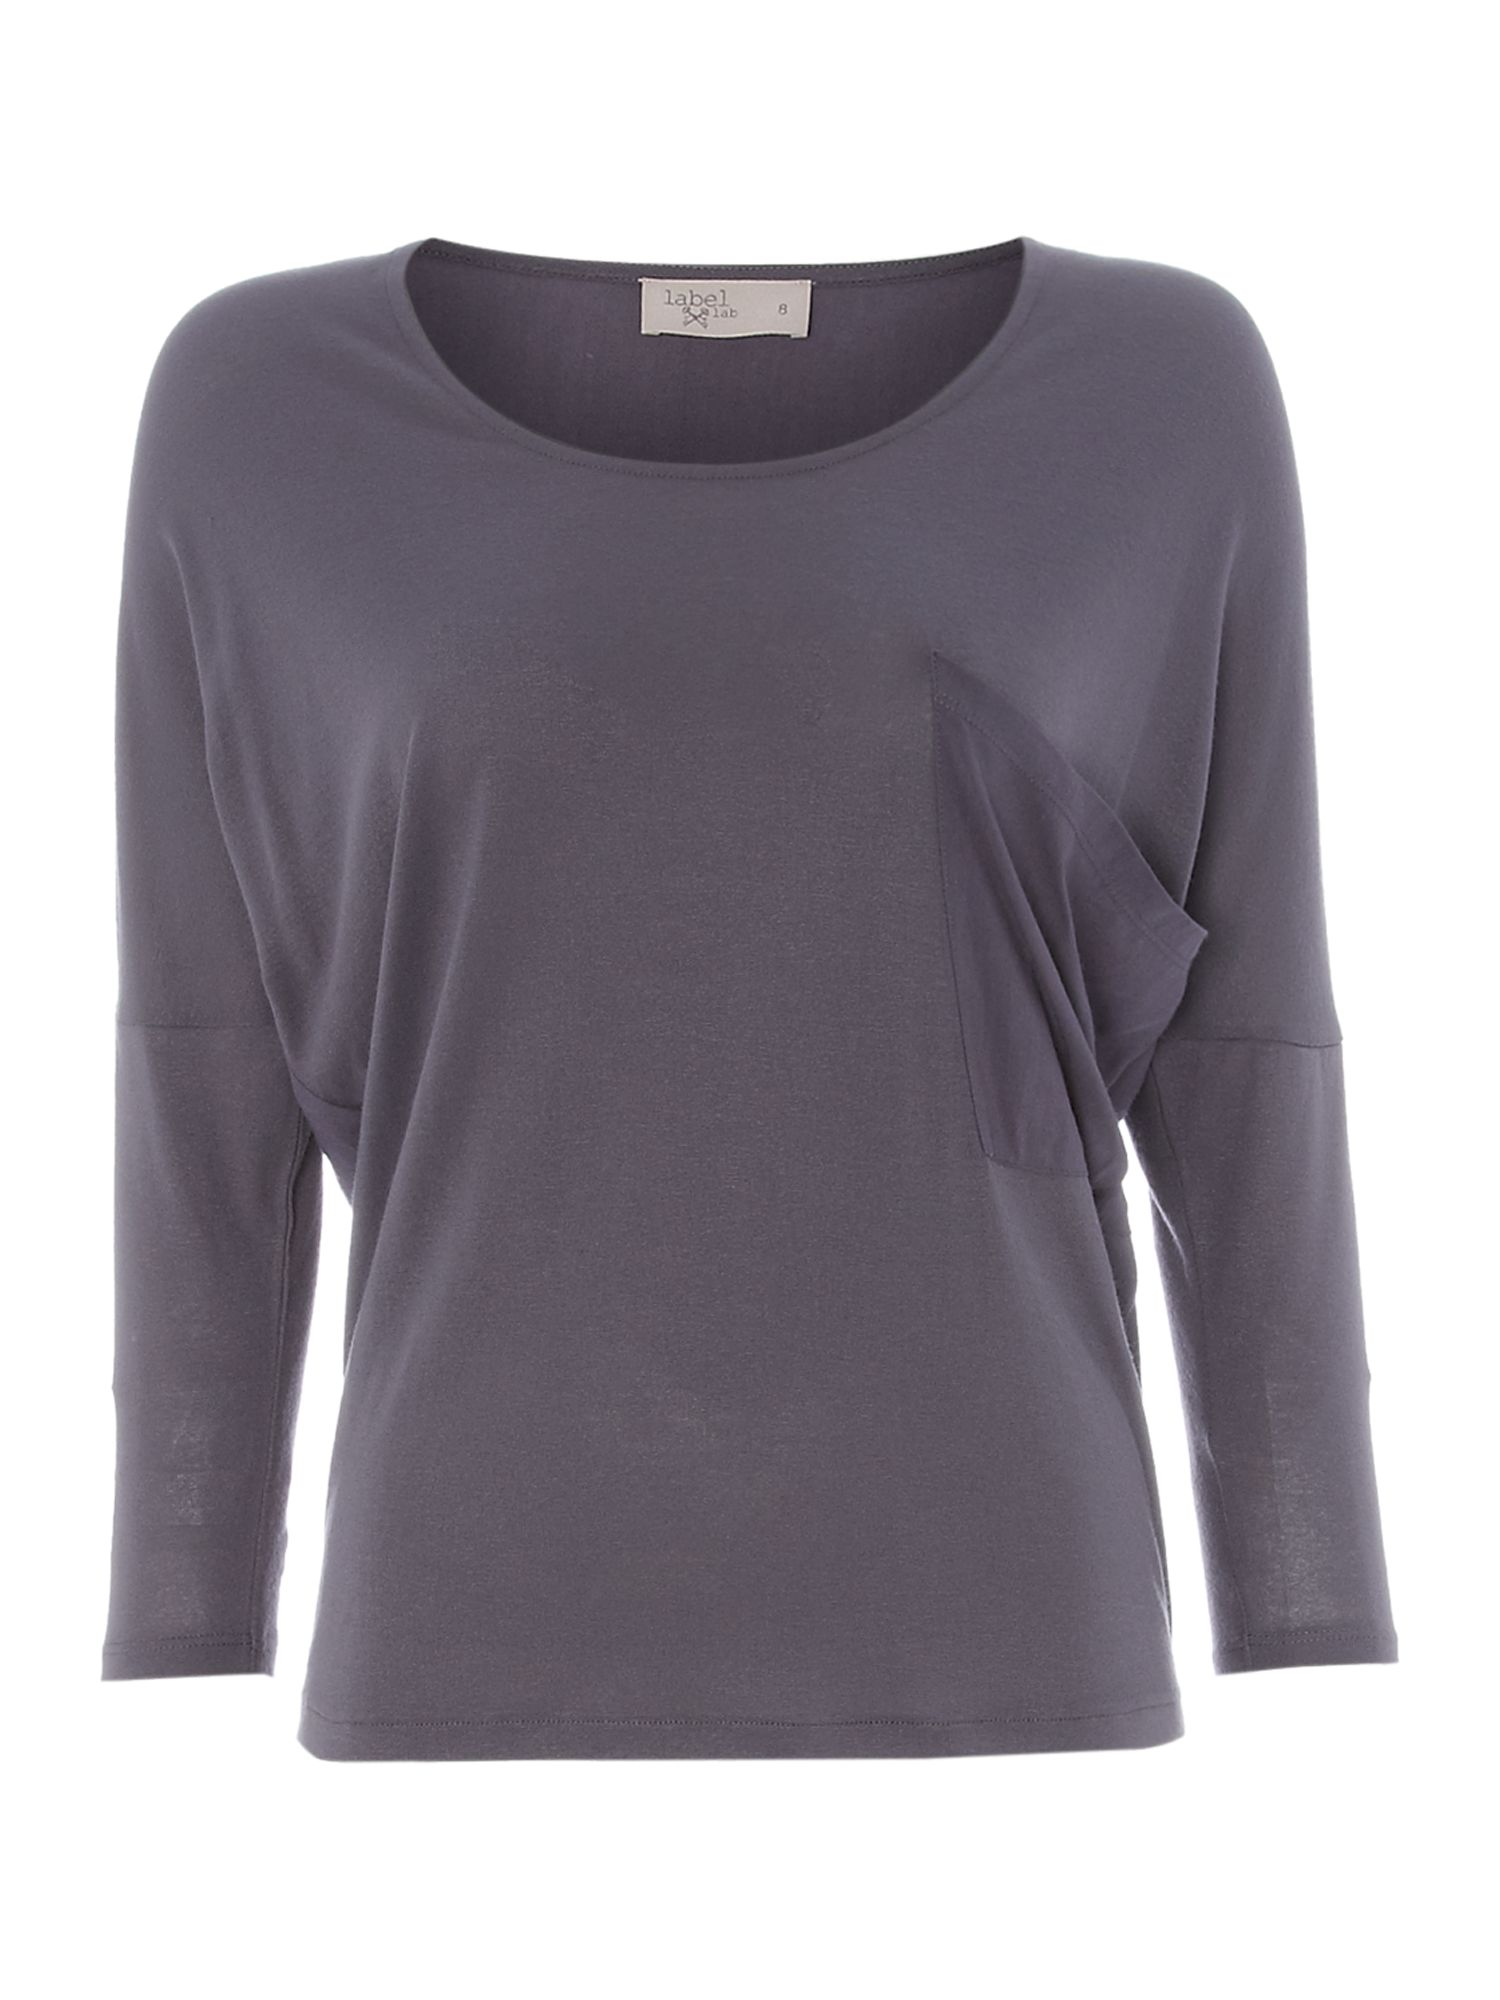 Long sleeved woven jersey top